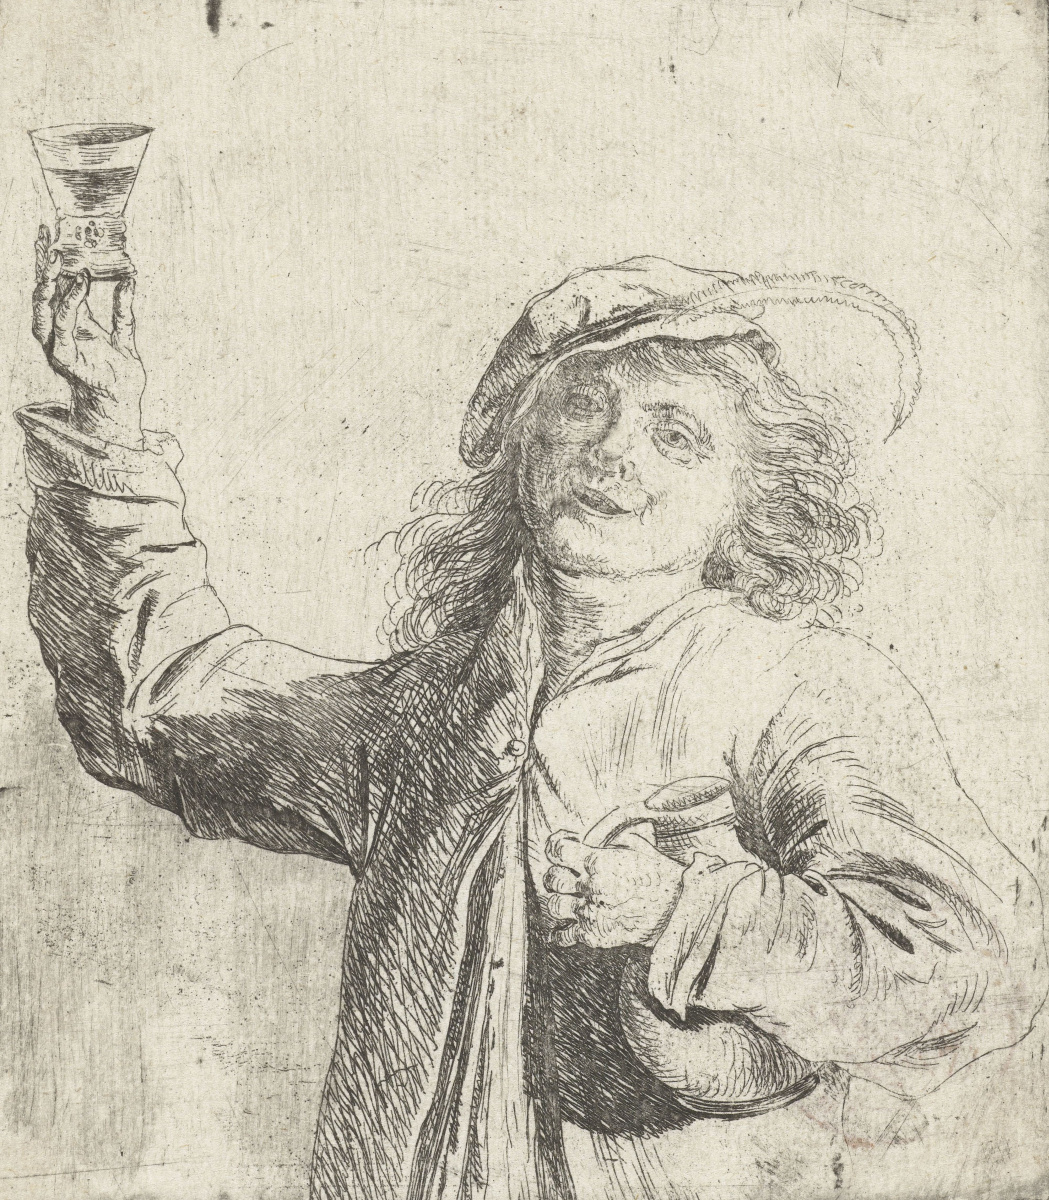 Jan Lievens. A man with a glass in hand and jug under my arm